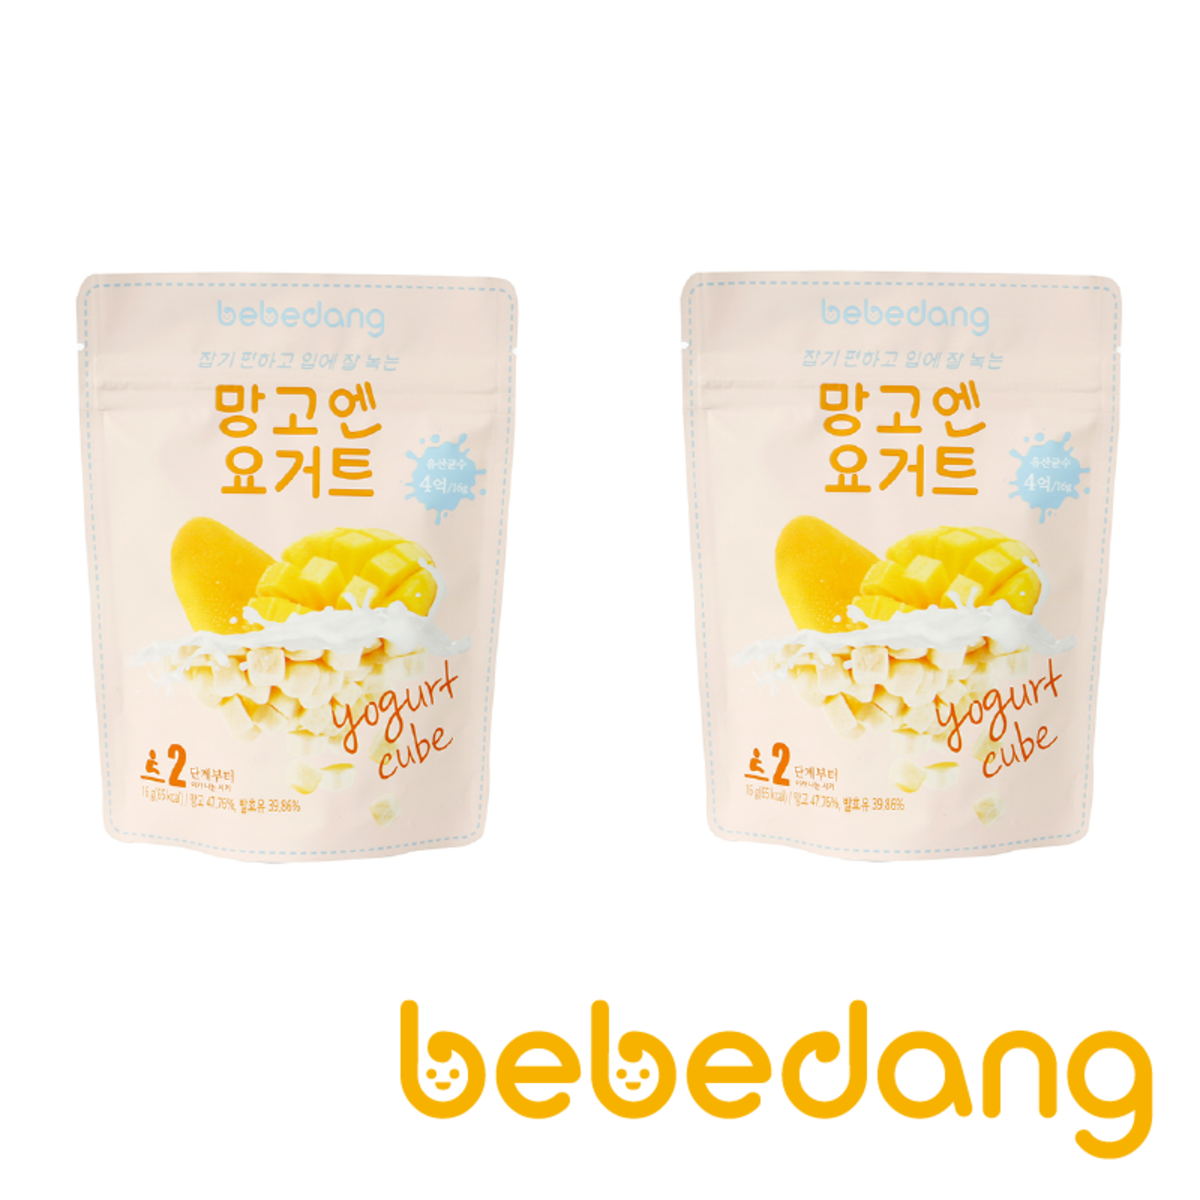 Dry Frozen Yogurt Cube Mango 2pc